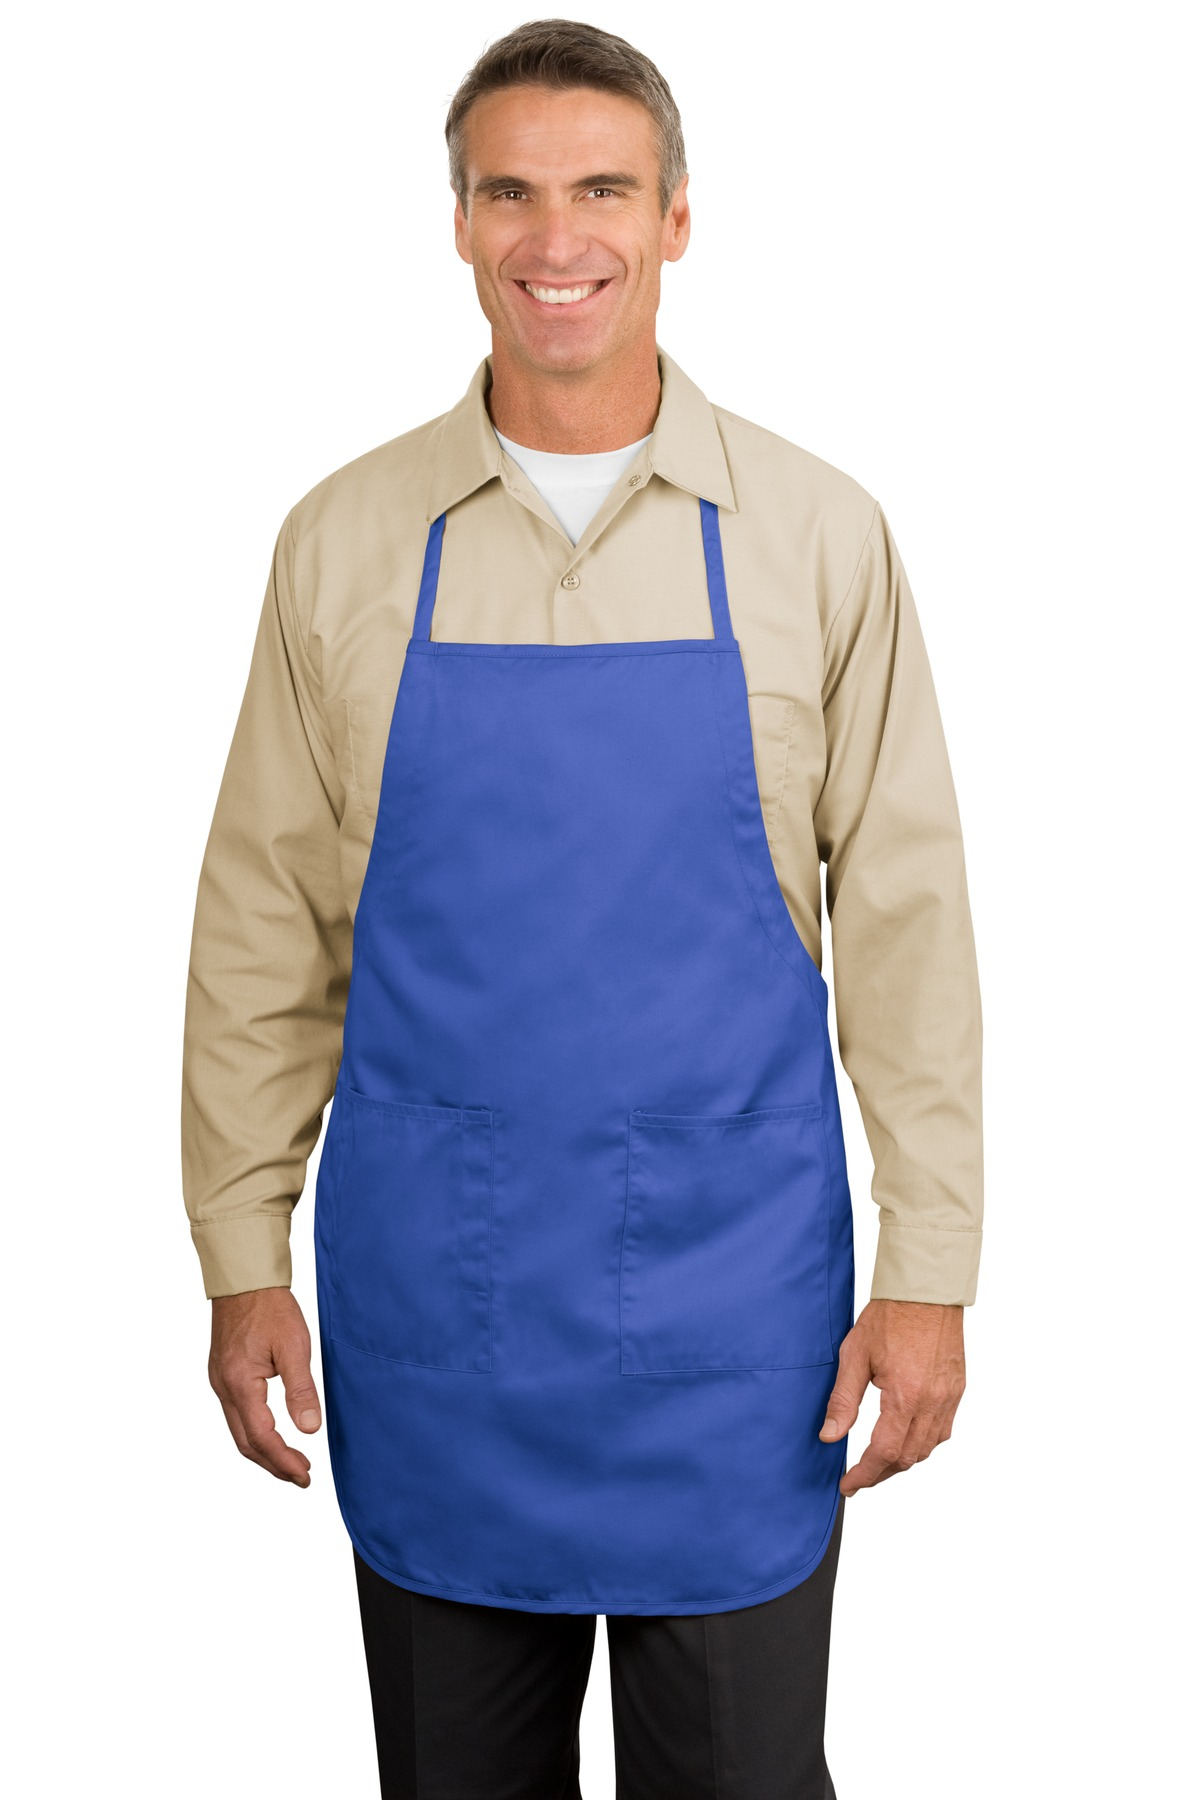 Accessories-Aprons-4